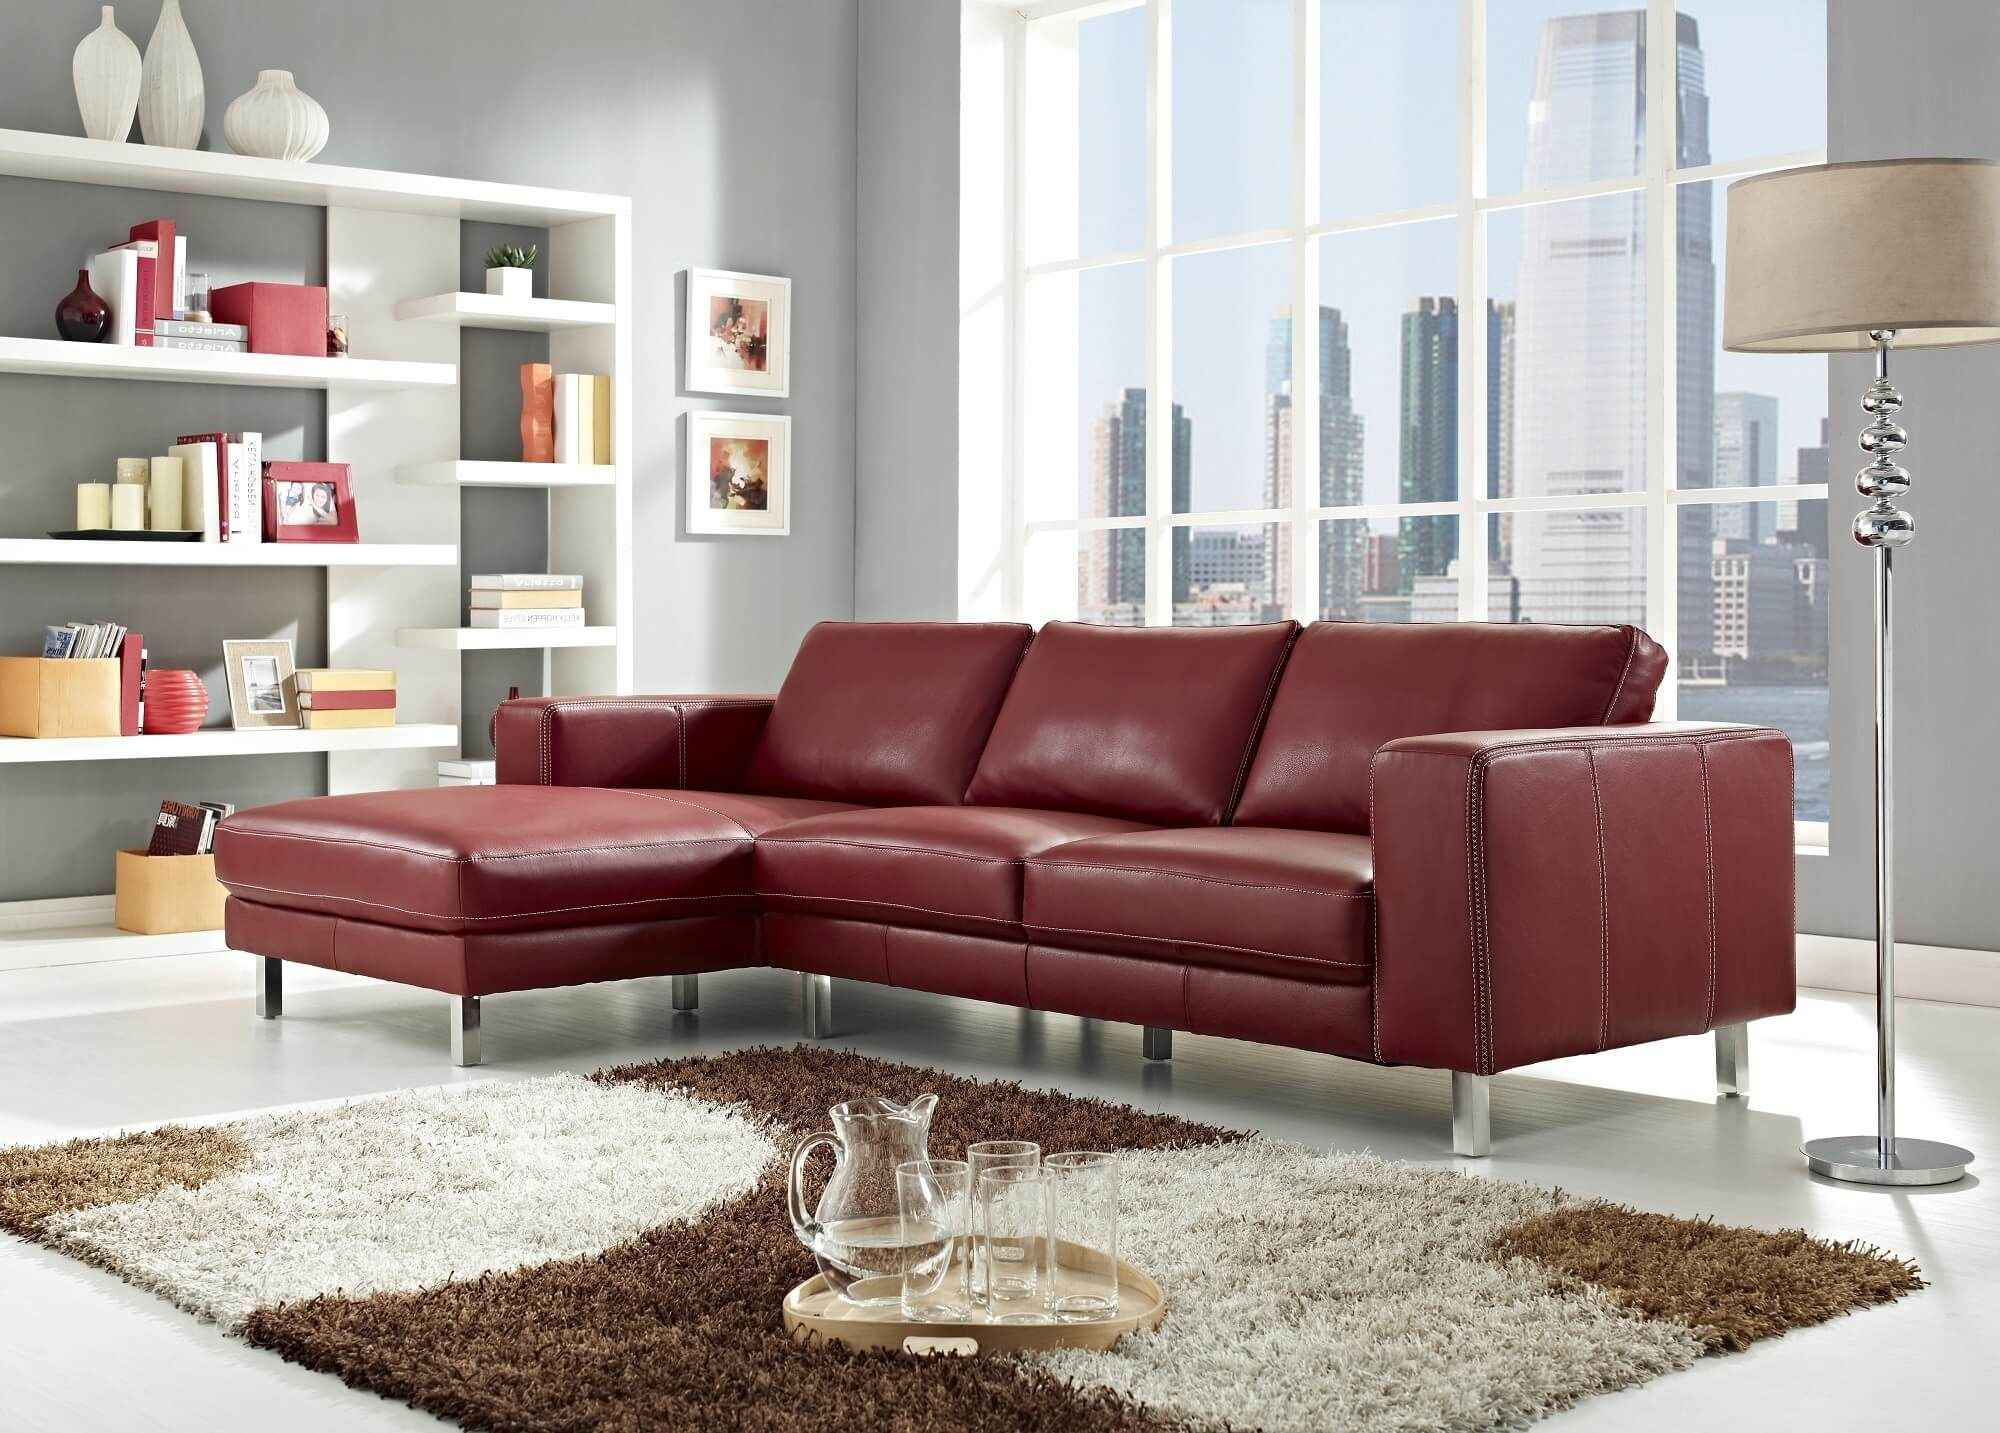 18 Stylish Modern Red Sectional Sofas  Leather Sofas Simple Unique Living Room Designs With Leather Furniture Design Ideas